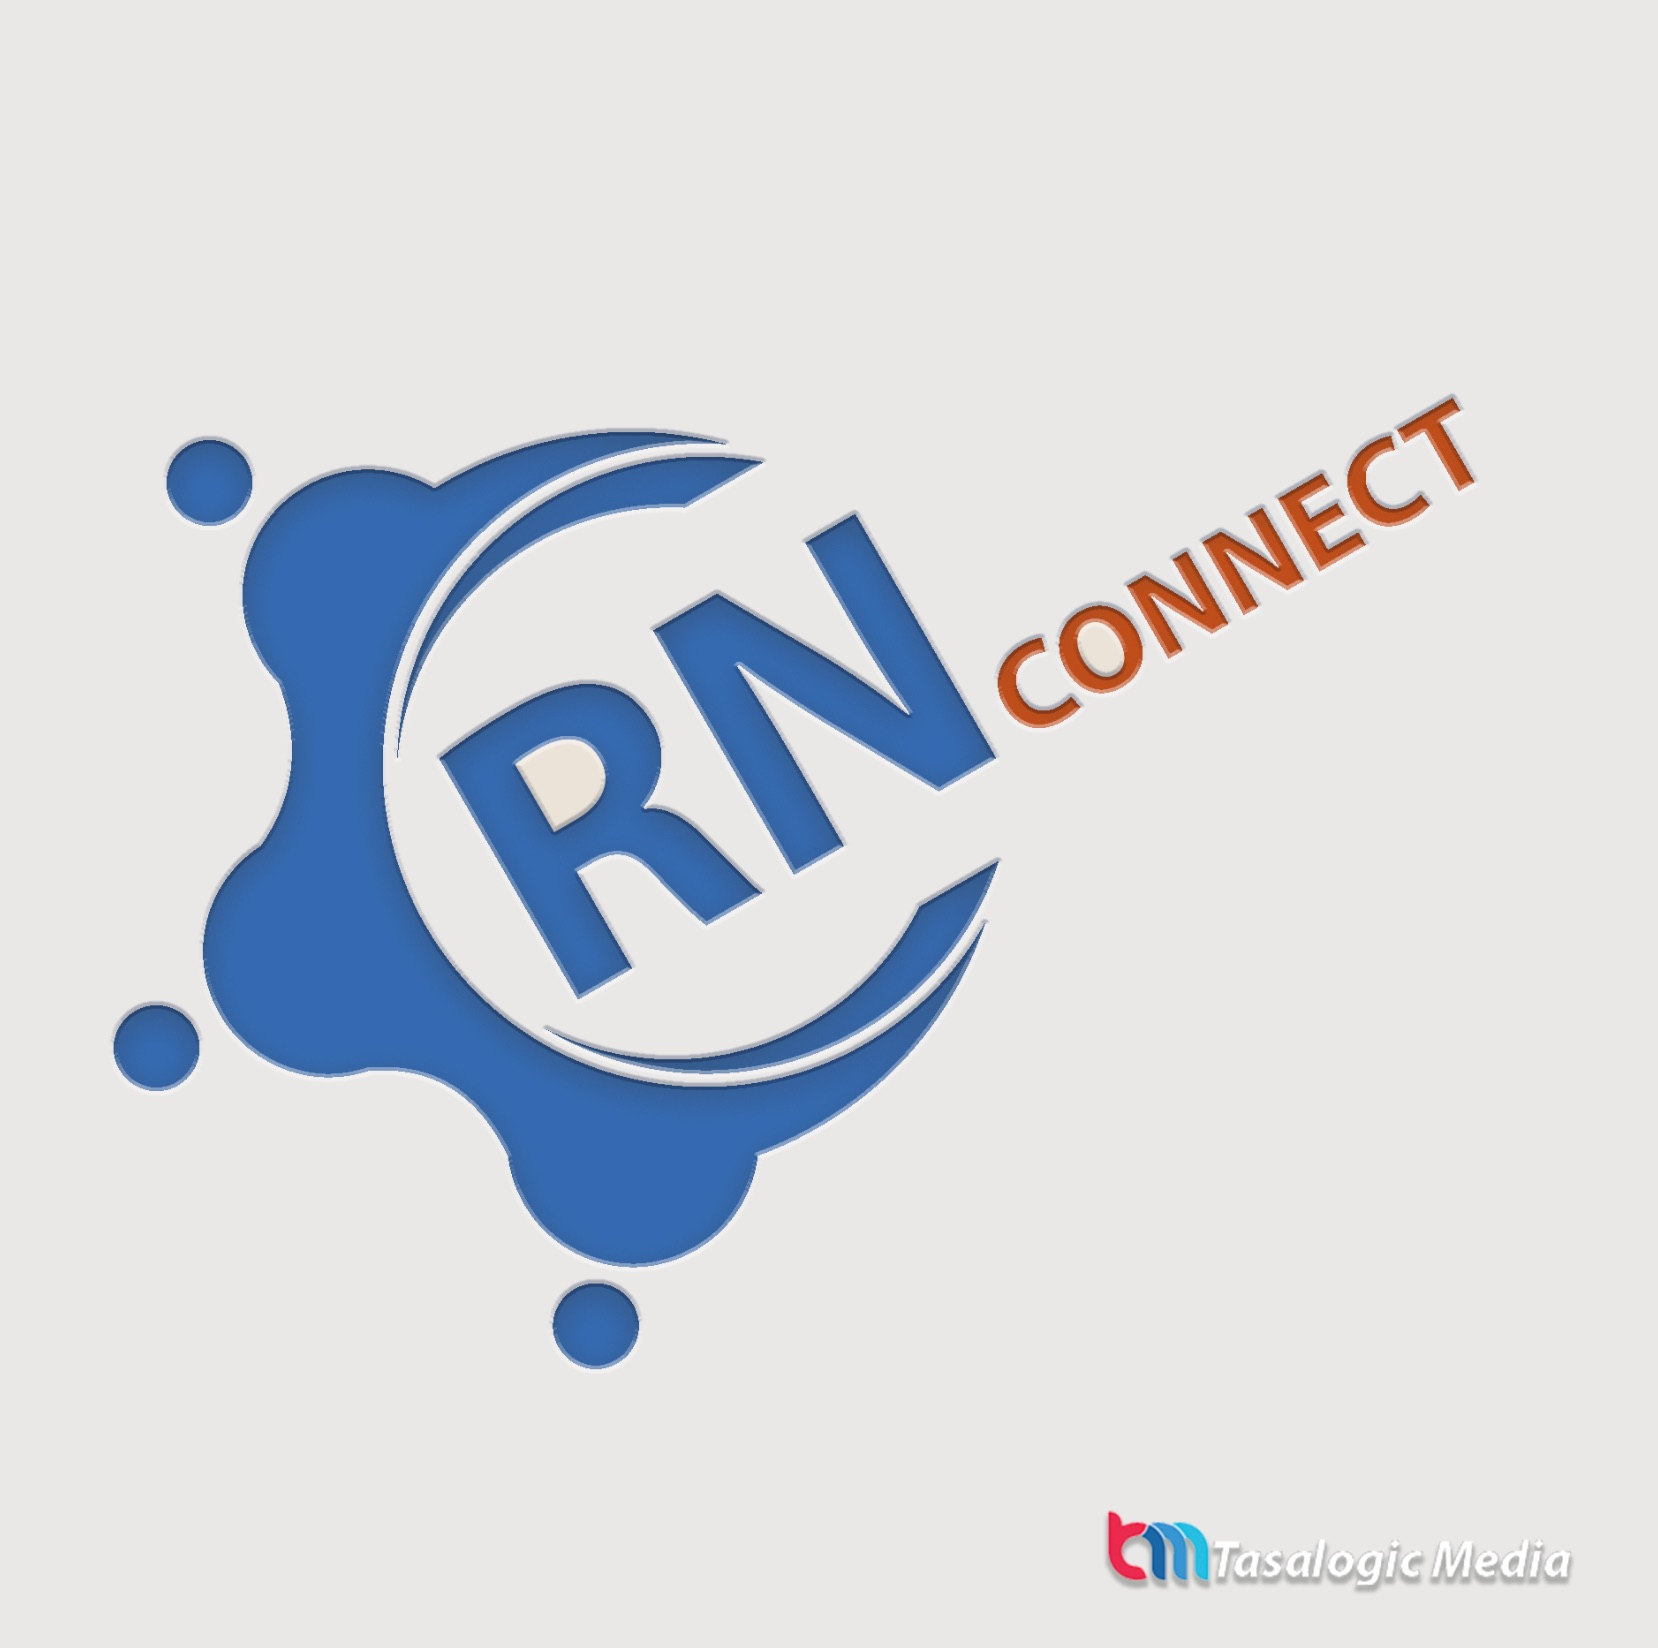 Tasalogic-Media-rn-connect